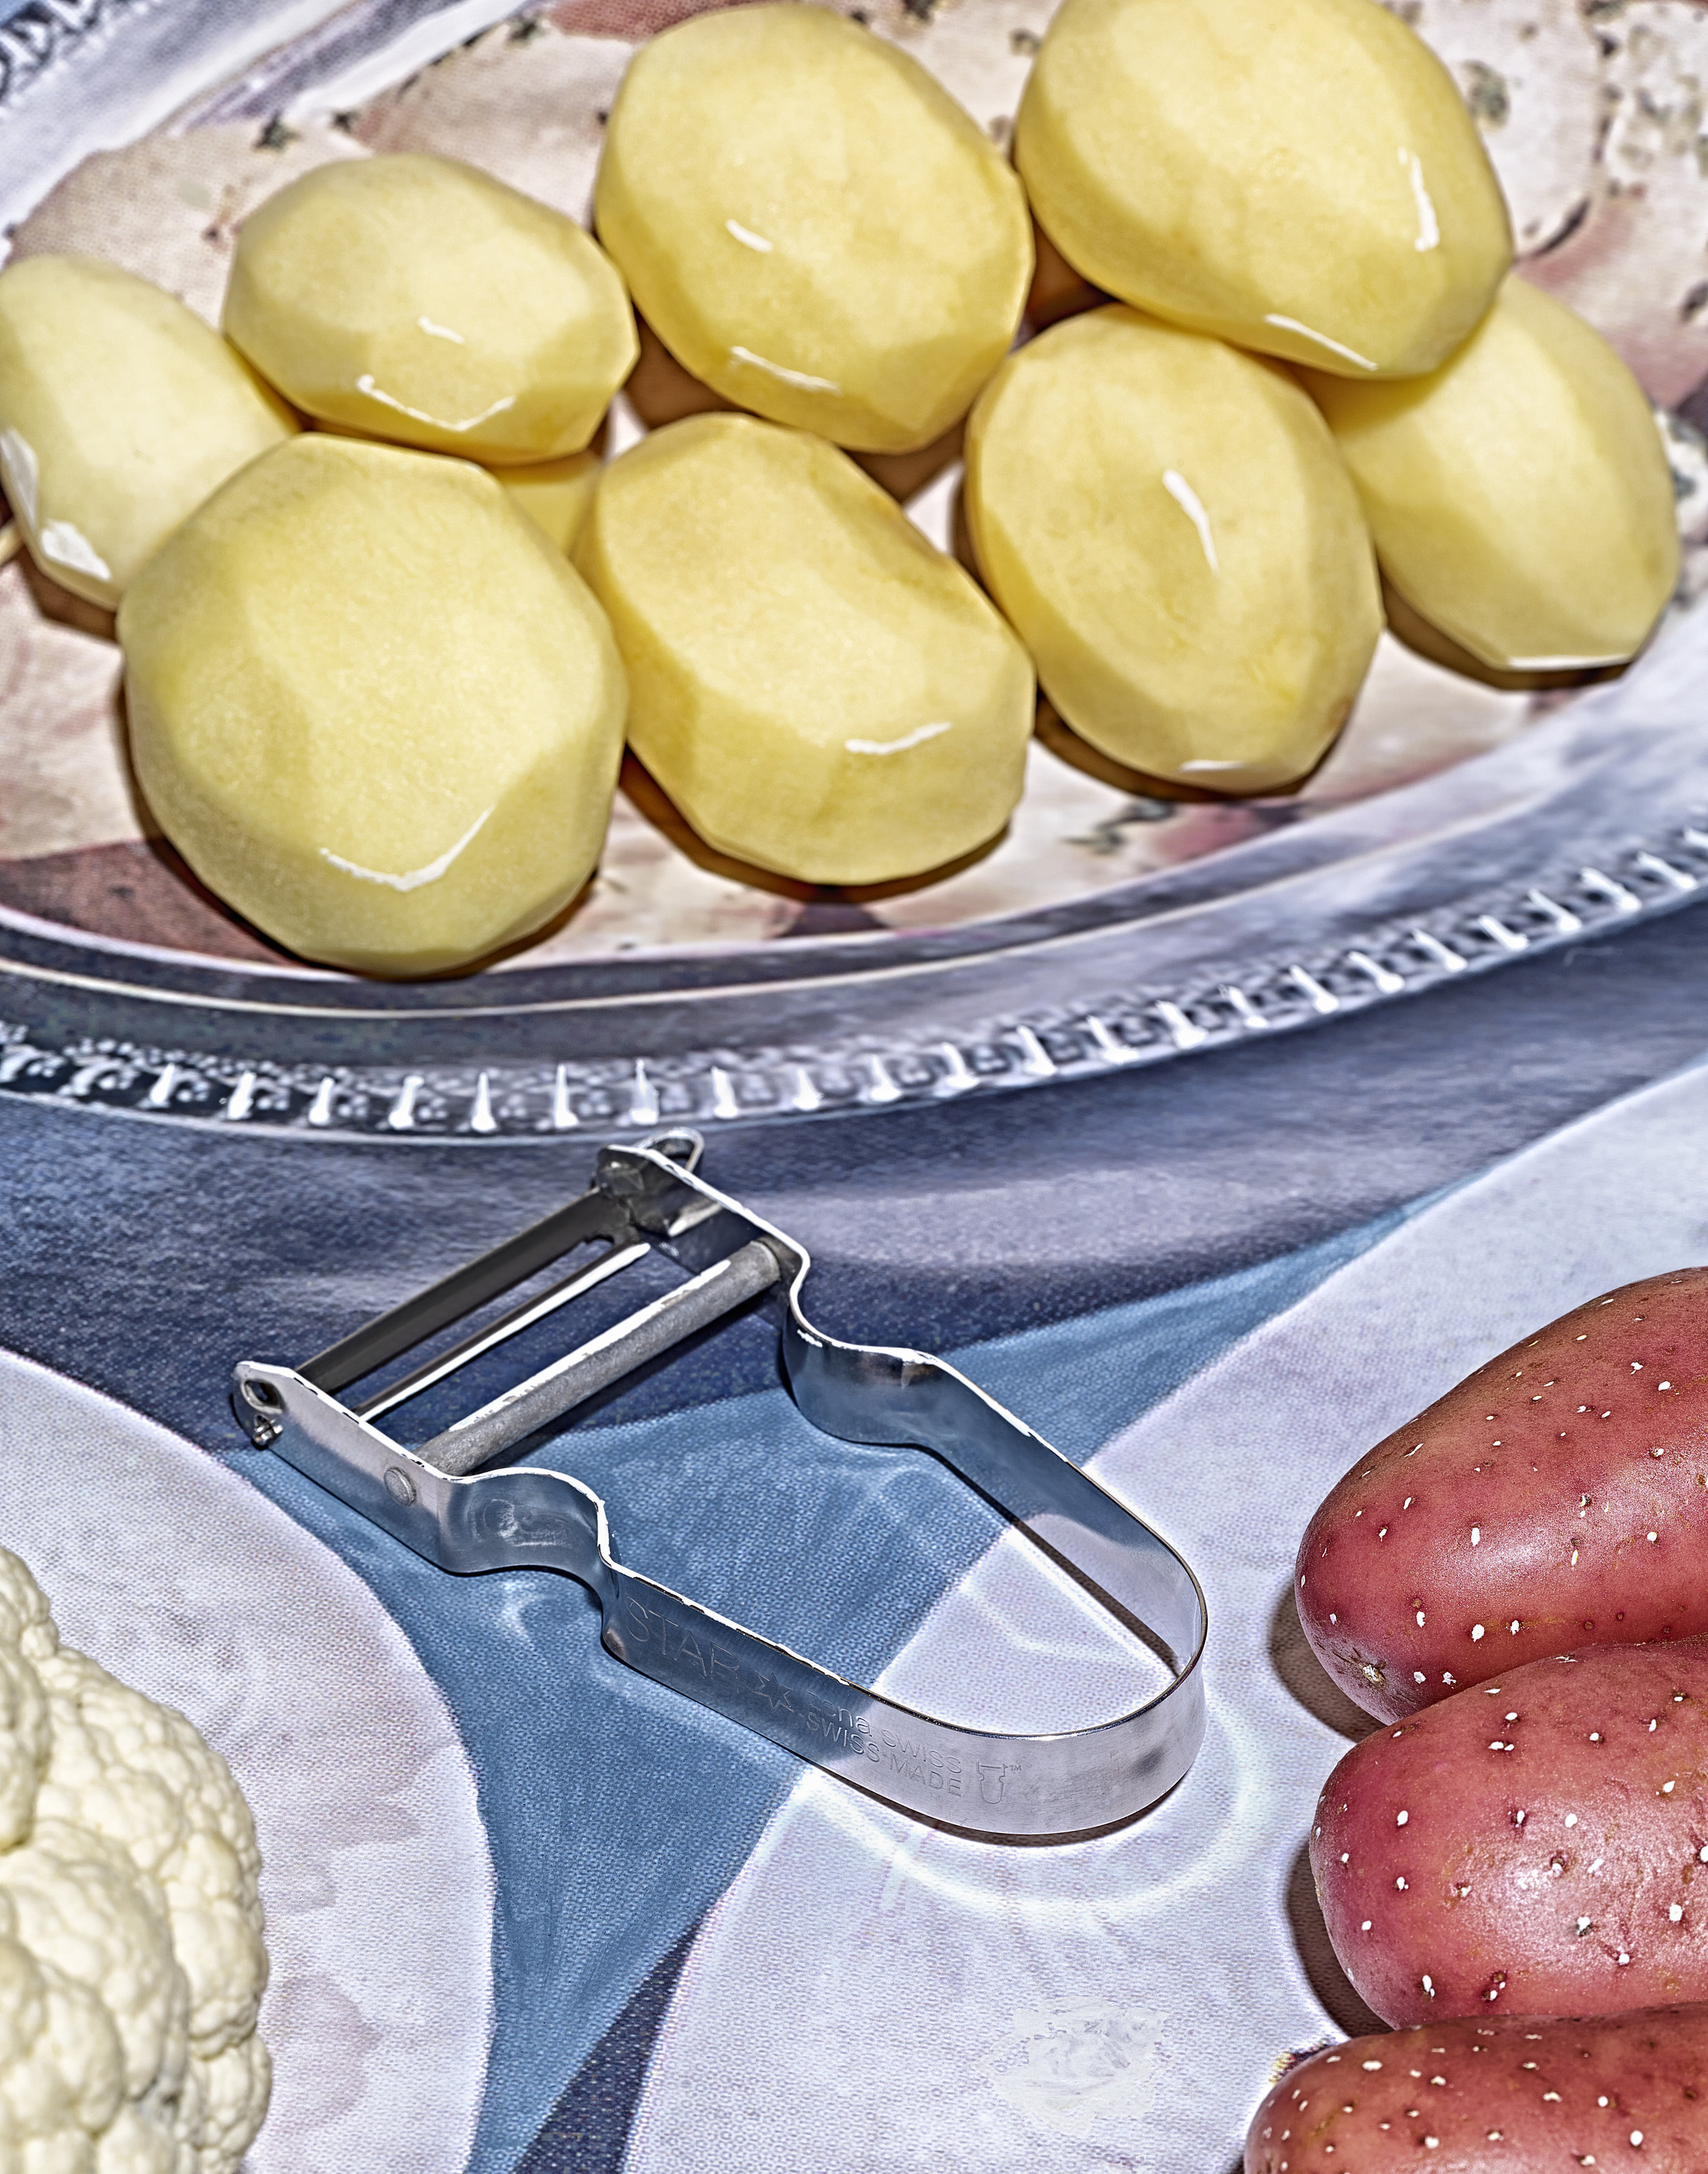 vkm_the_history_of_dutch_food_aardappel.2000x0.jpg